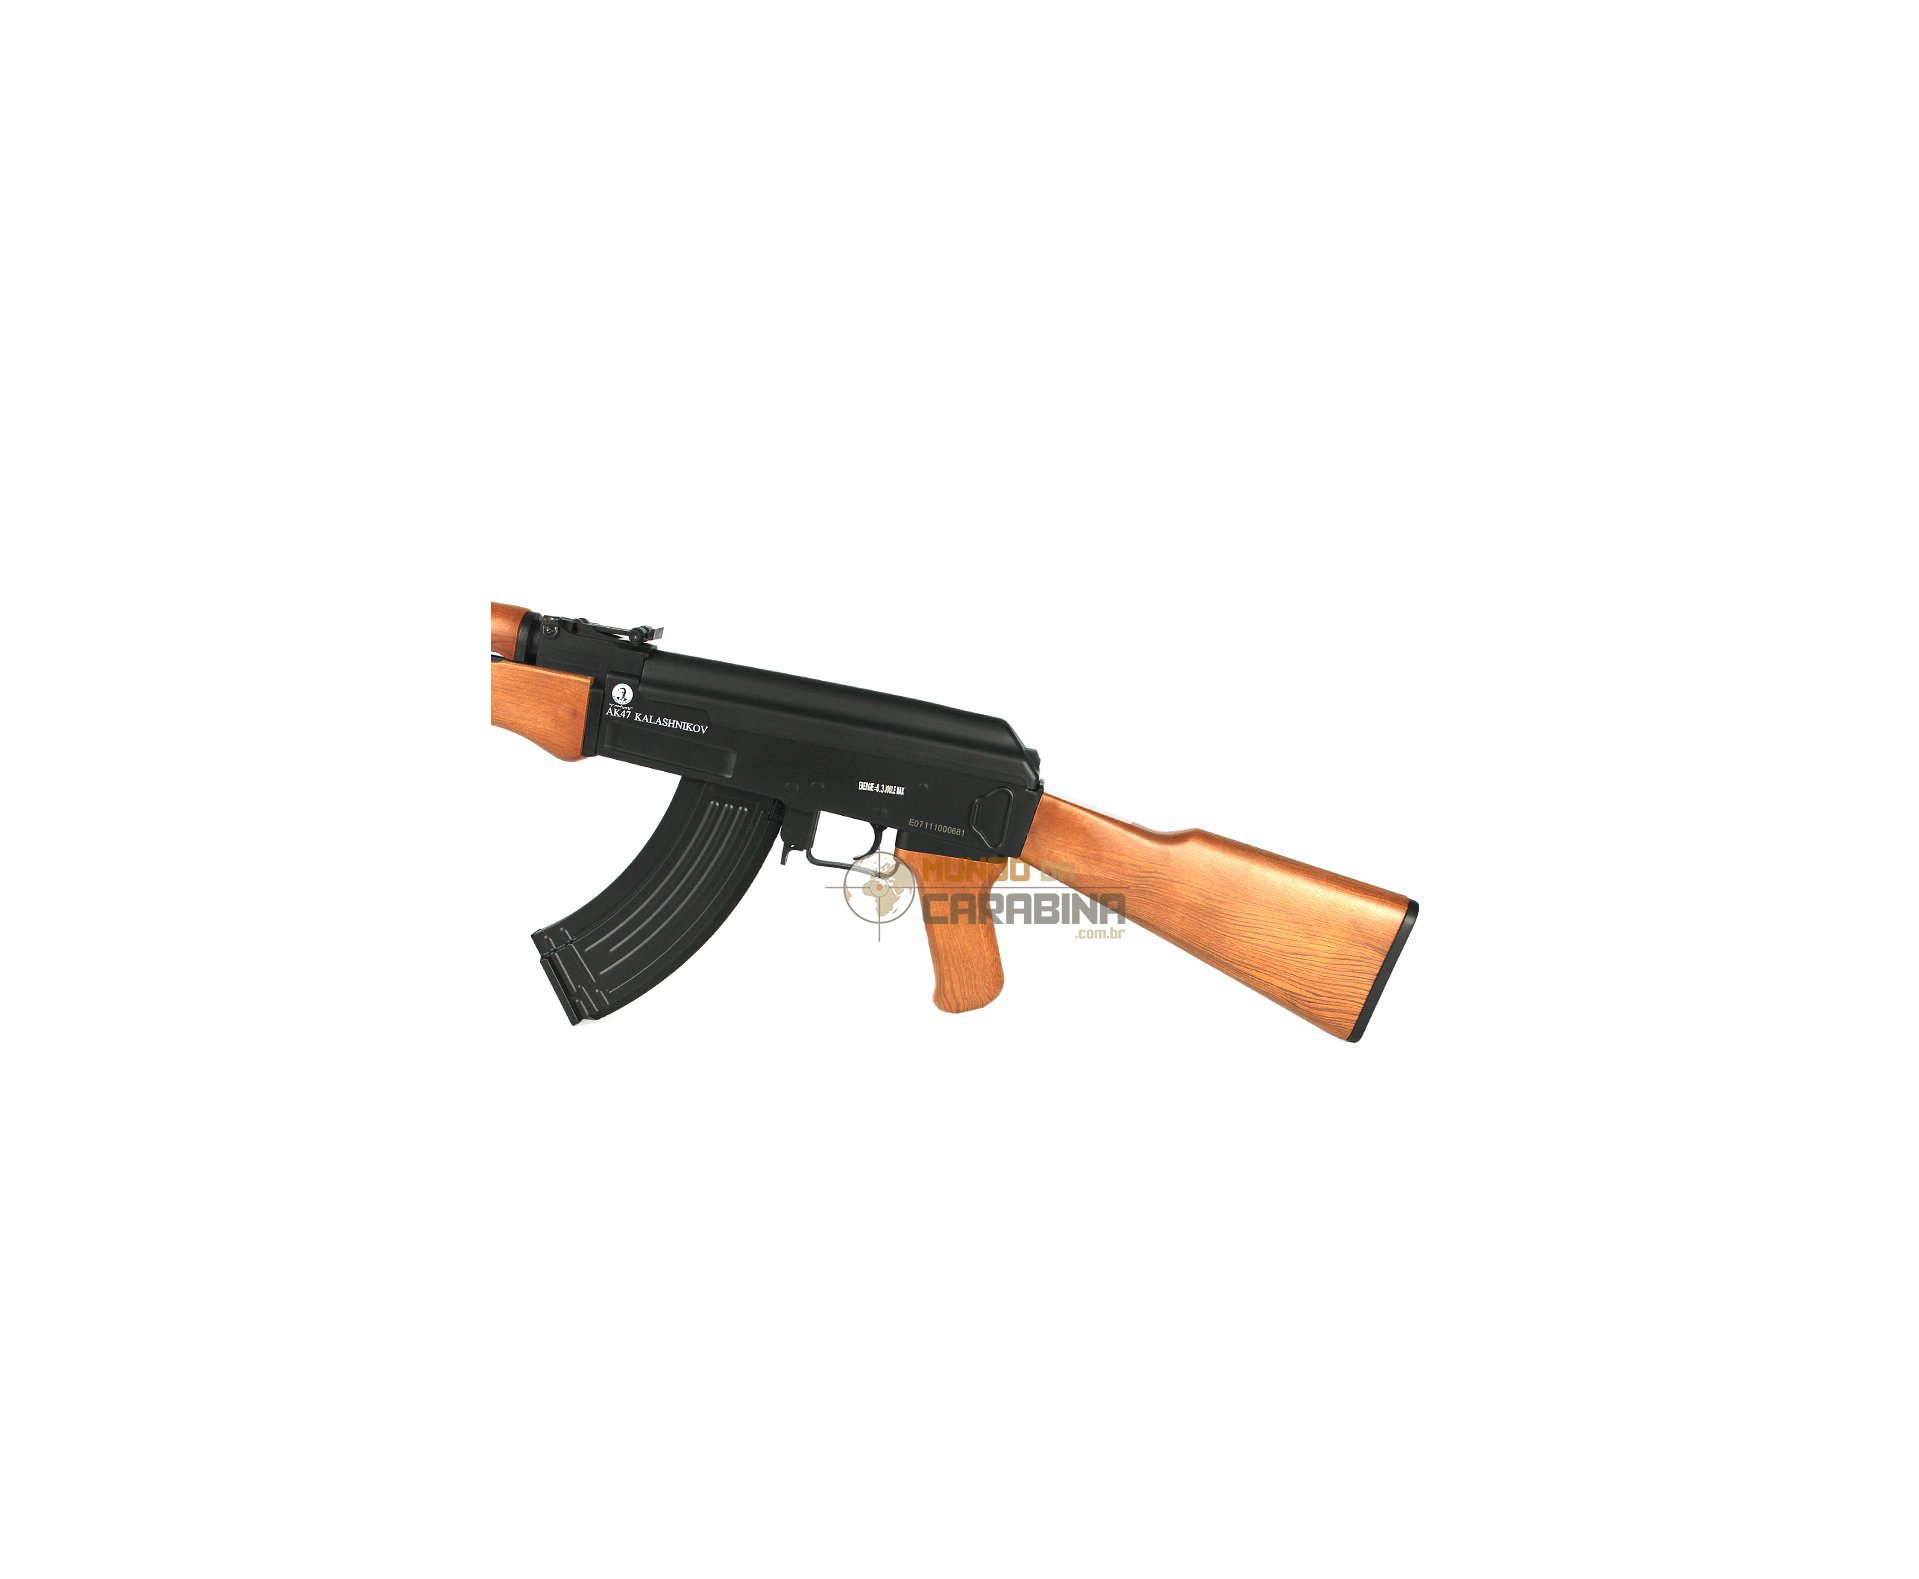 Rifle De Airsoft Ak47 Toy - Calibre 6,0 Mm - Kalashnikov (cyber Gun)